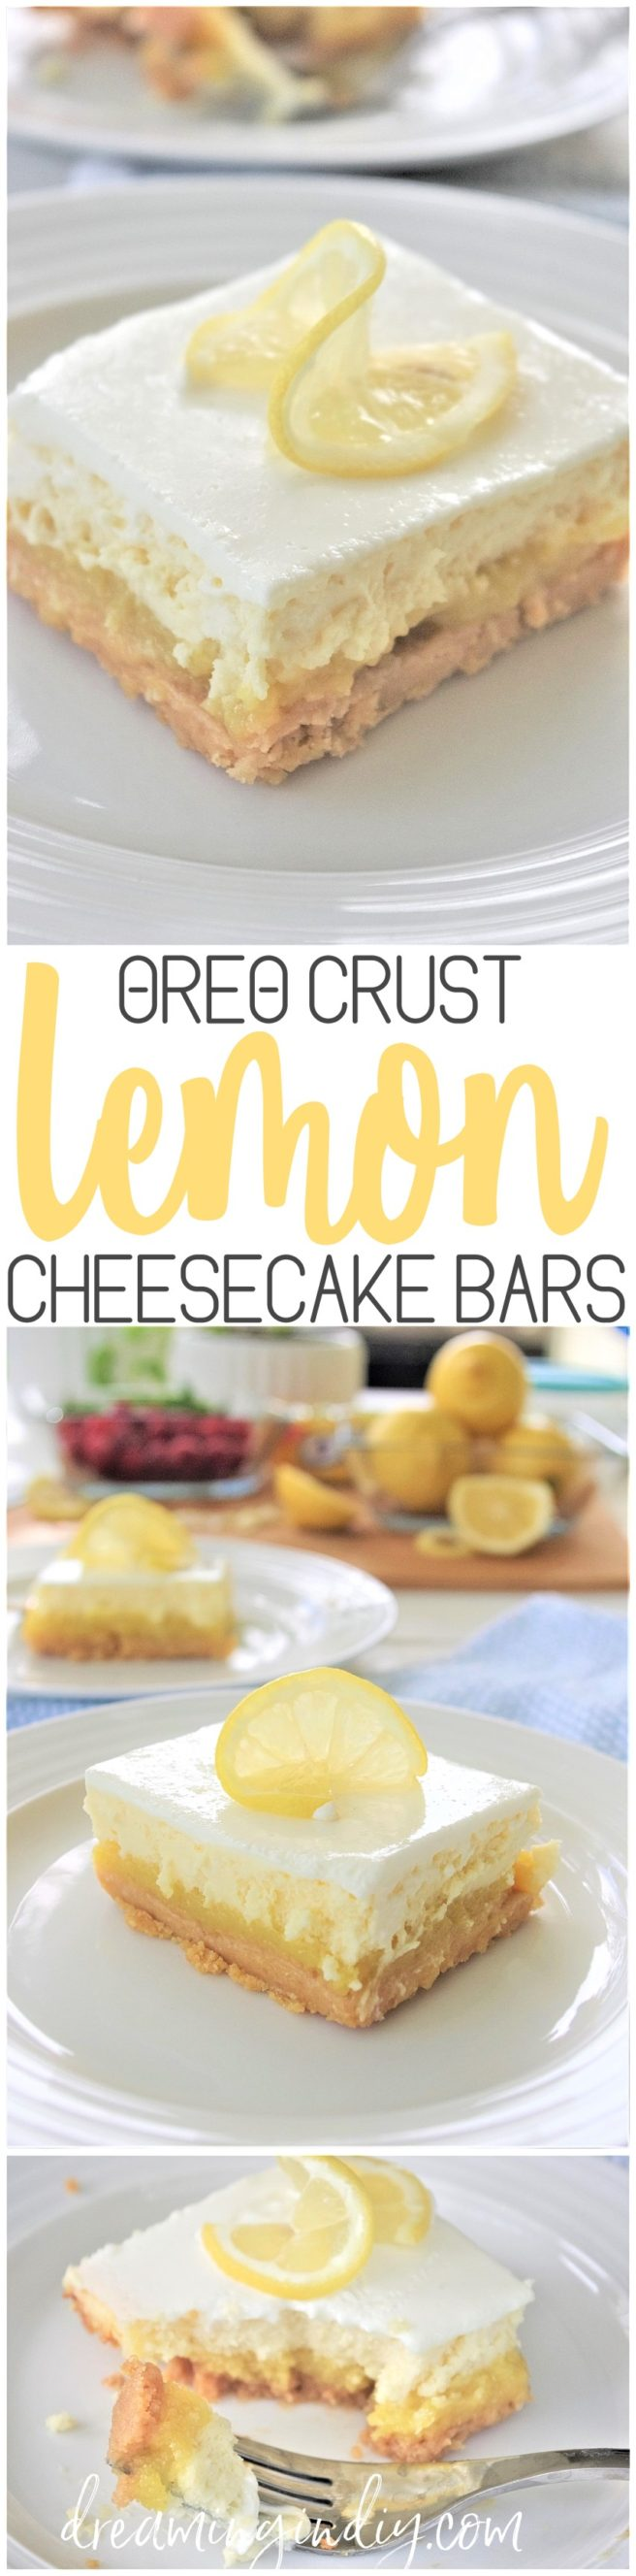 Oreo Crust Easy Sour Cream Lemon Layered Cheesecake Dessert Bars Recipe via Dreaming in DIY #lemondesserts #lemonbars #easylemonbars #lemoncheesecakebars #cheesecakebars #easydesserts #simpledesserts #simplerecipes #simpledessertrecipes